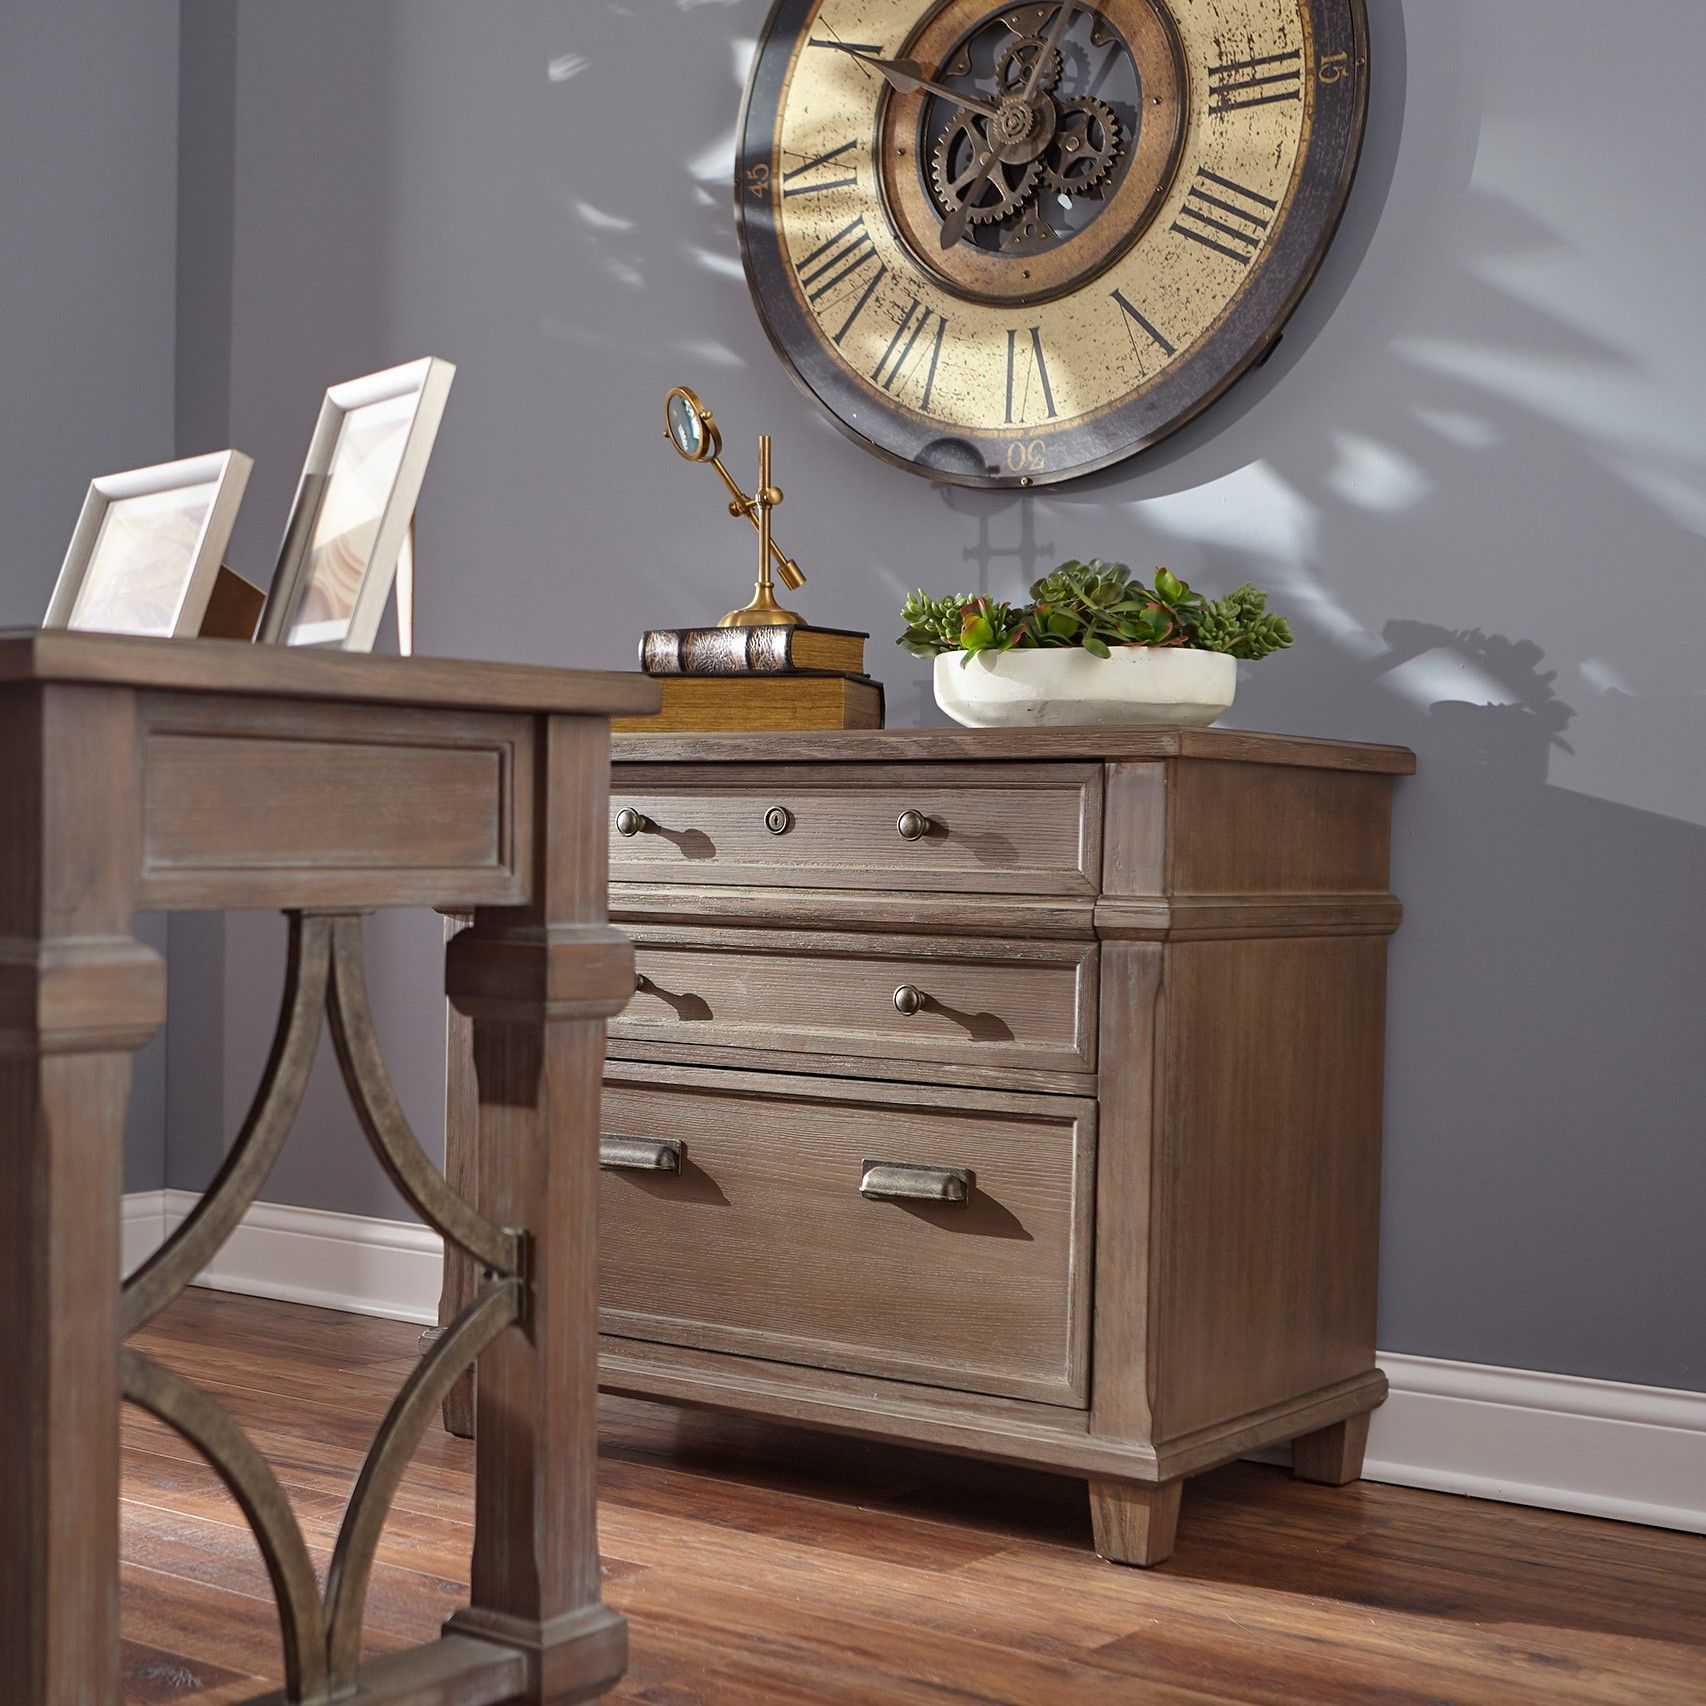 Desk Tables Homeoffice: Rustic Traditional Home Office Furniture # Homeoffice